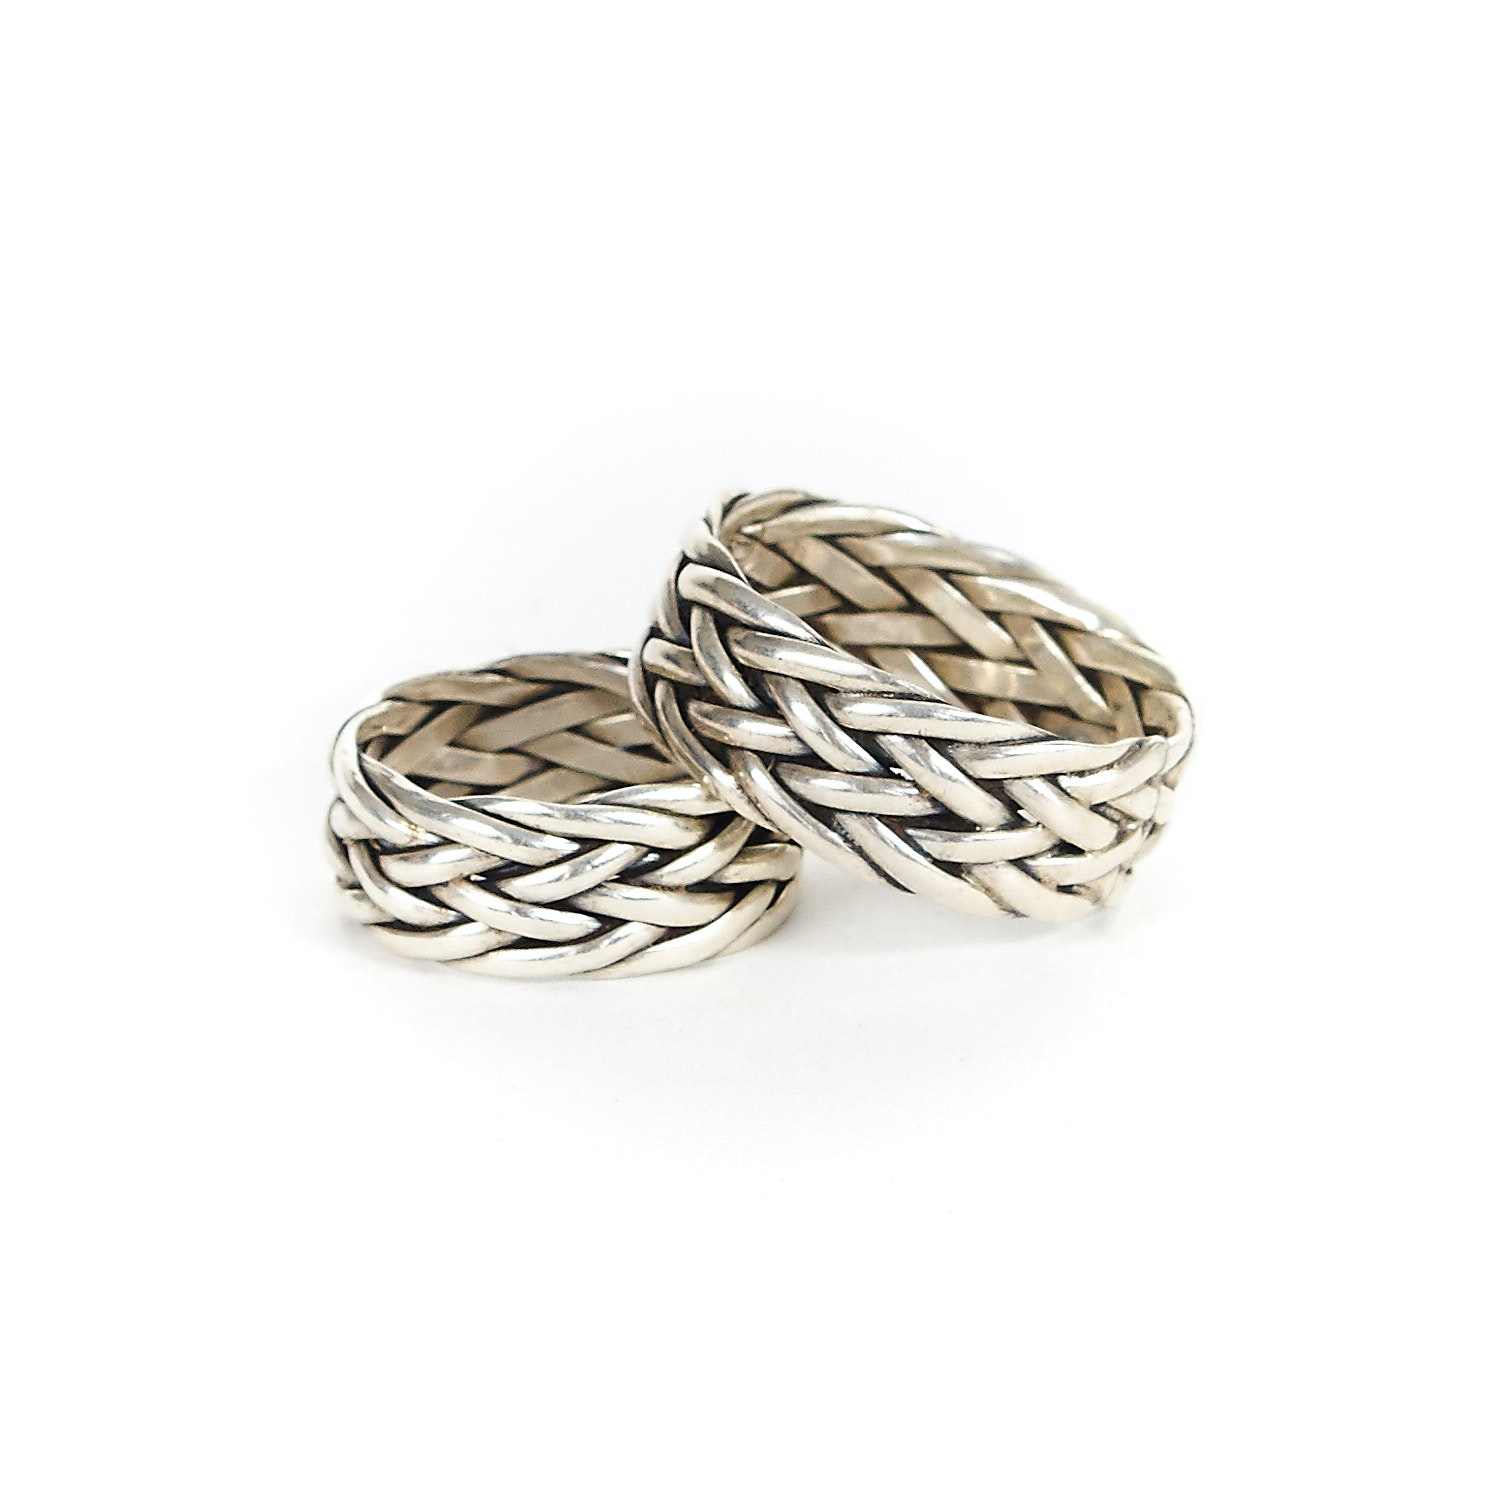 Pair of Sterling Silver Woven Bands